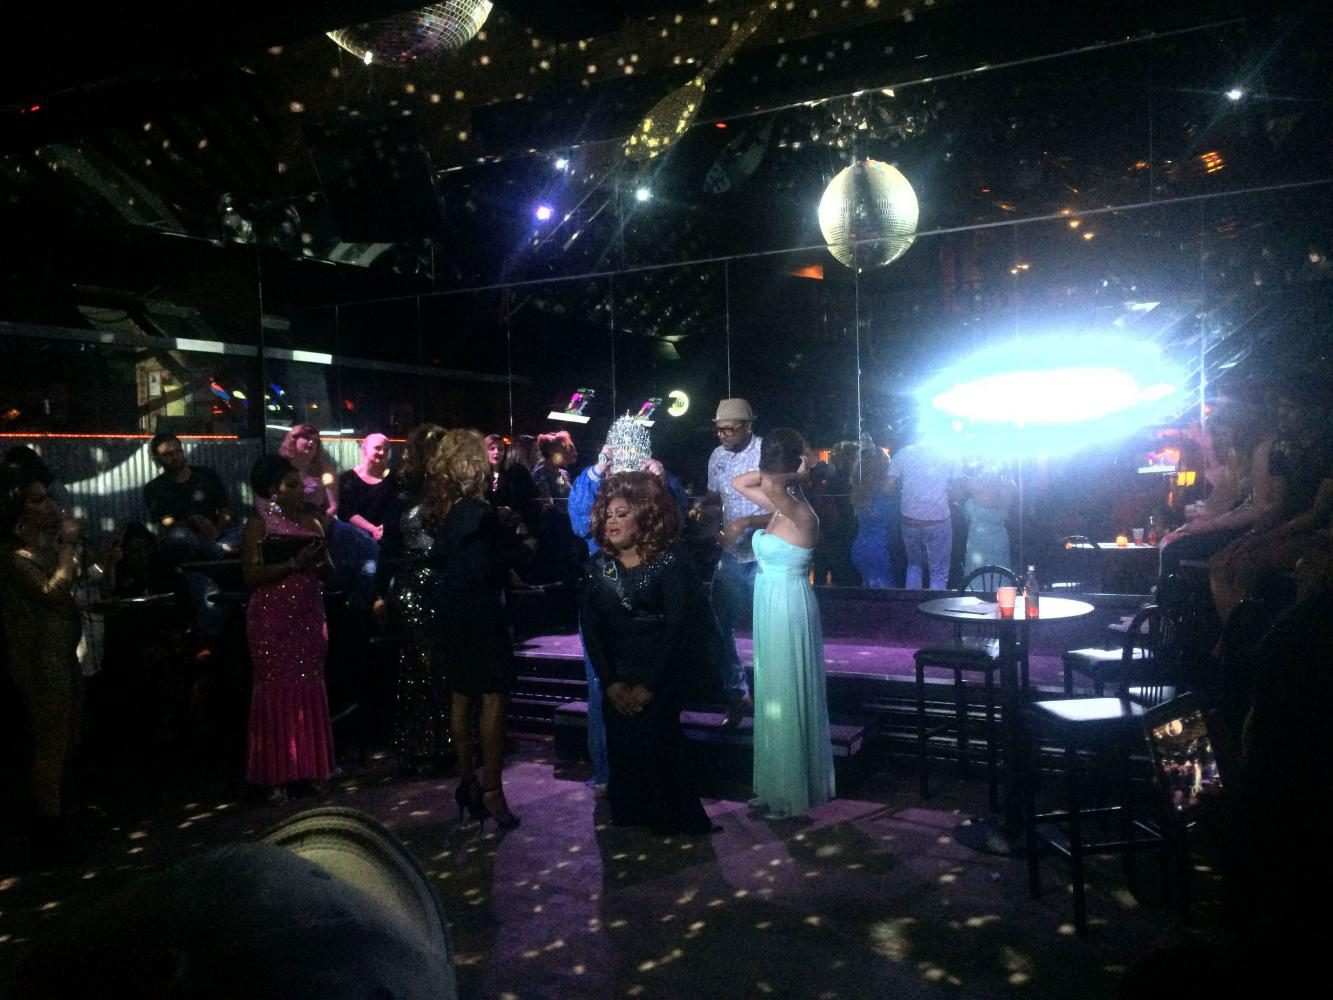 Contestants+on+stage+at+the+Miss+Gay+Illinois+State+Pageant+2017.+The+pageant+took+place+Sunday+at+Chester+Street+bar+in+Champaign.+